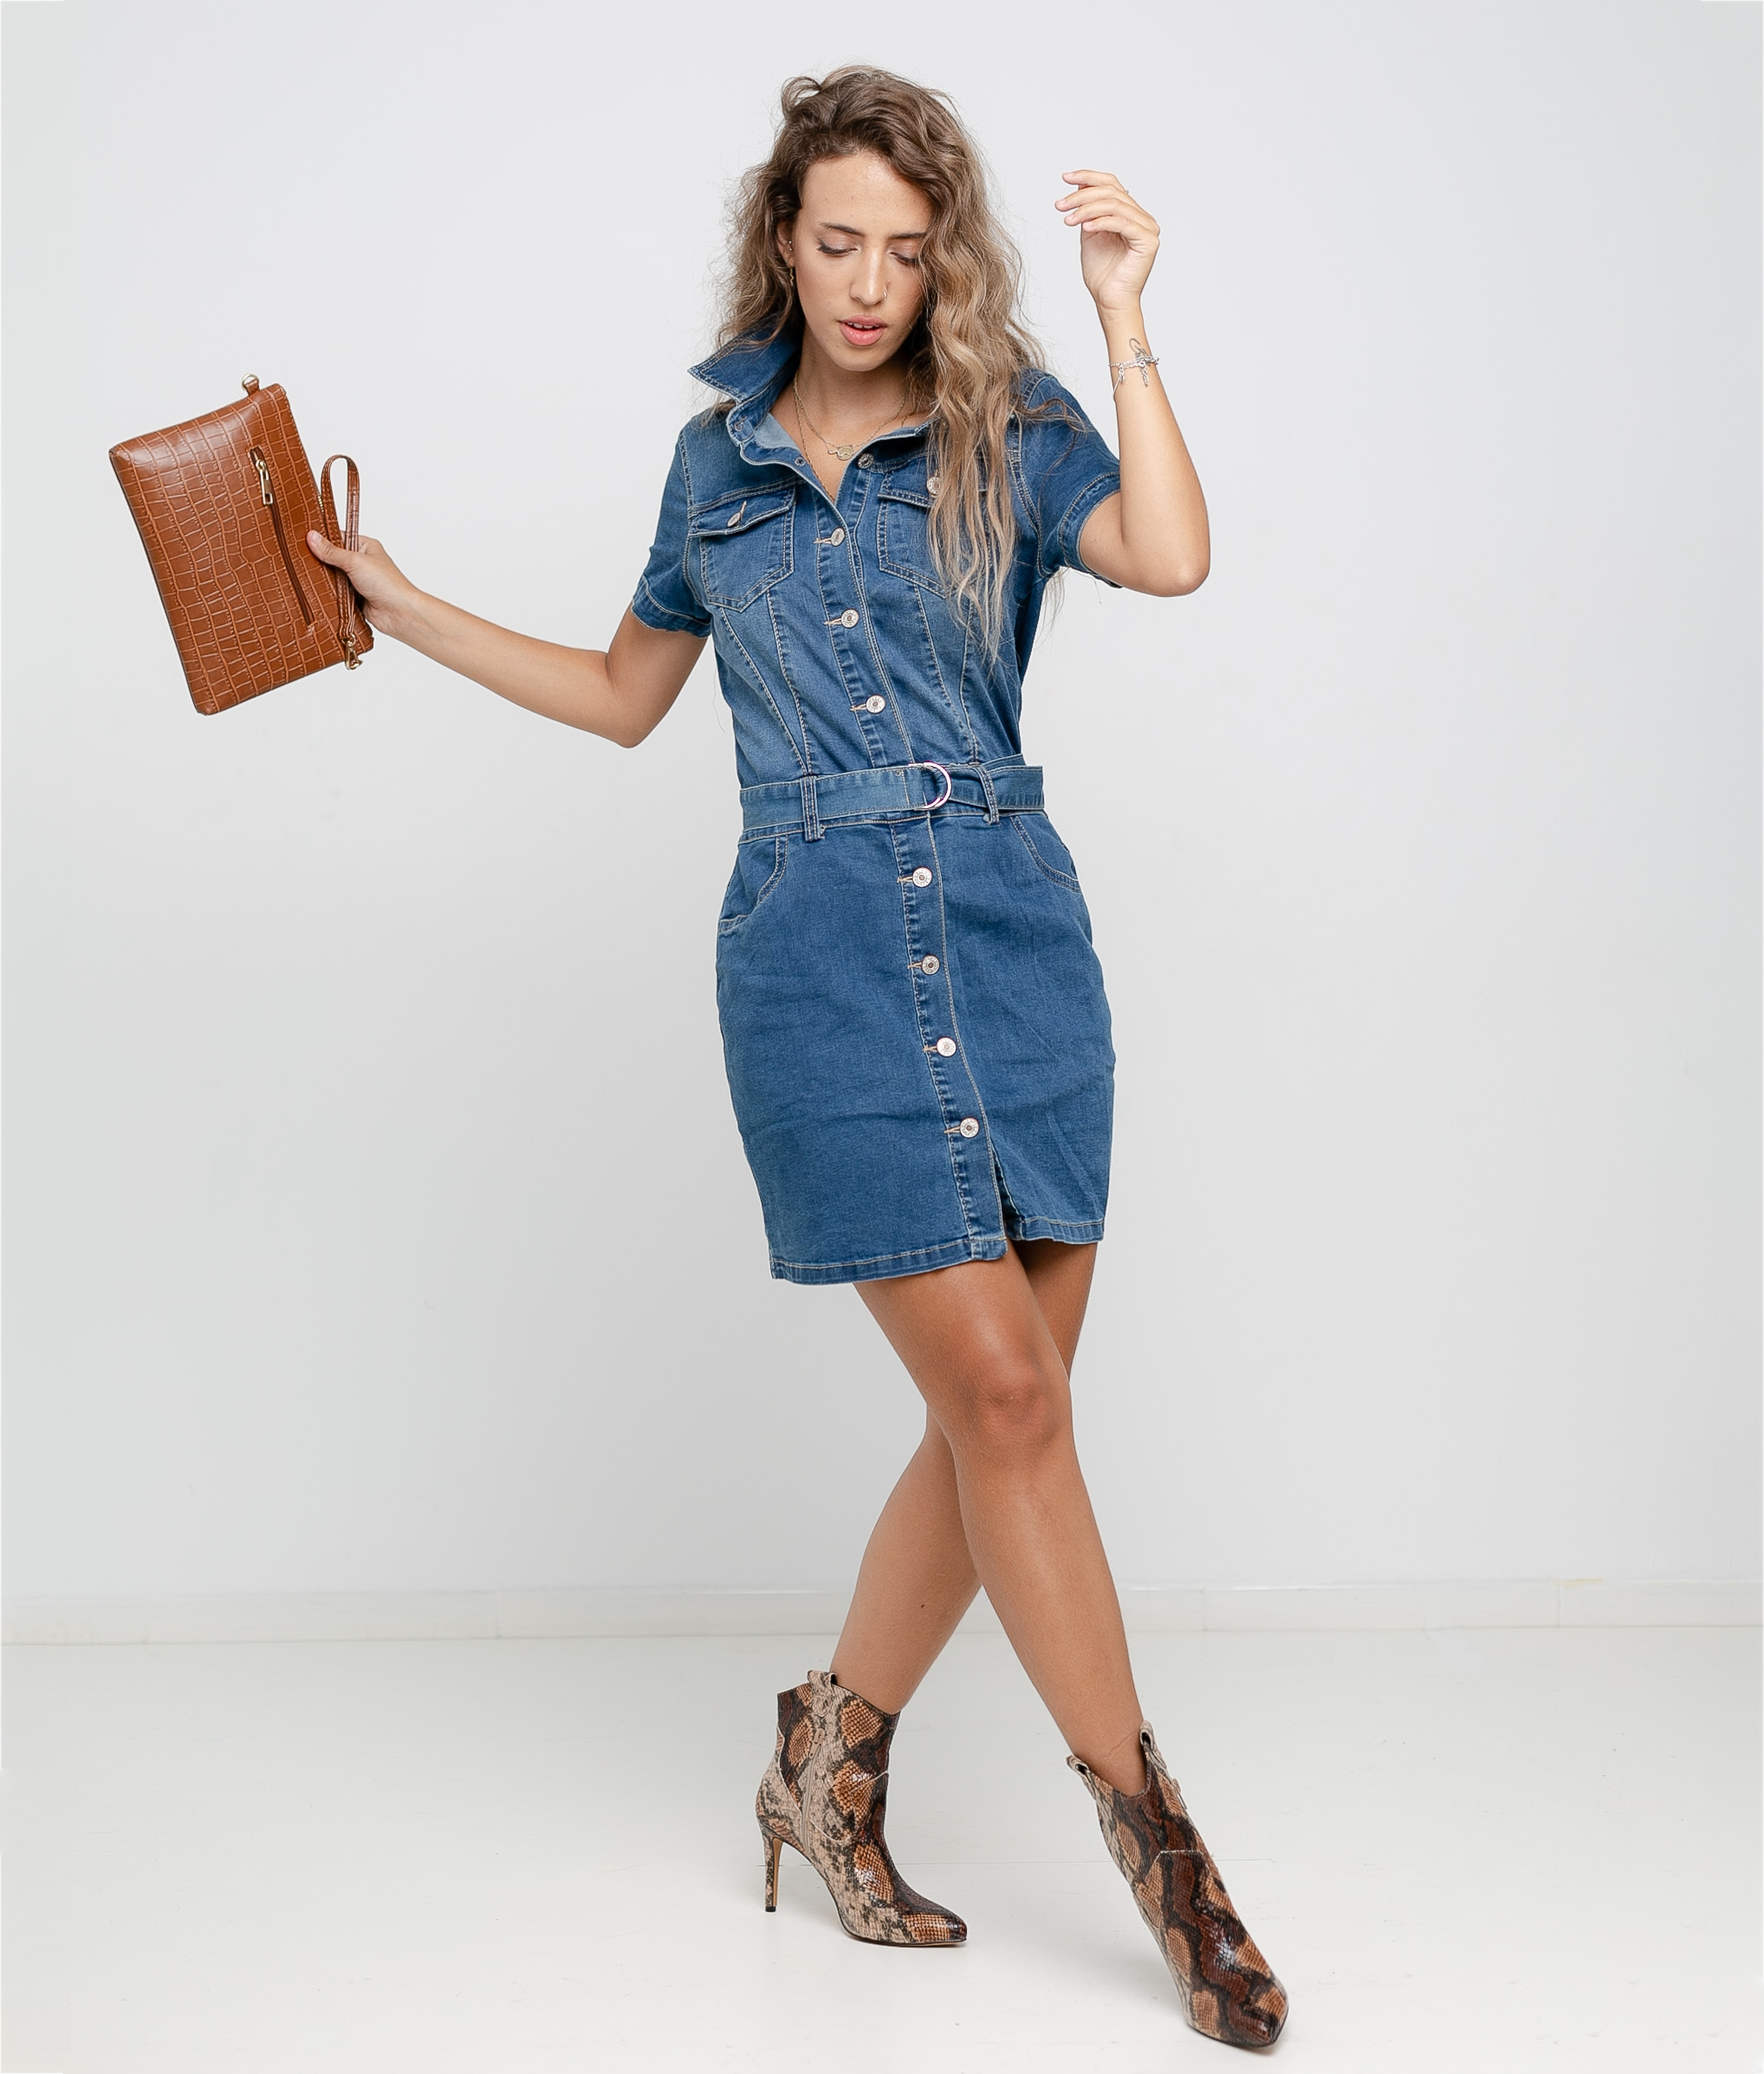 PROTES DRESS - DENIM